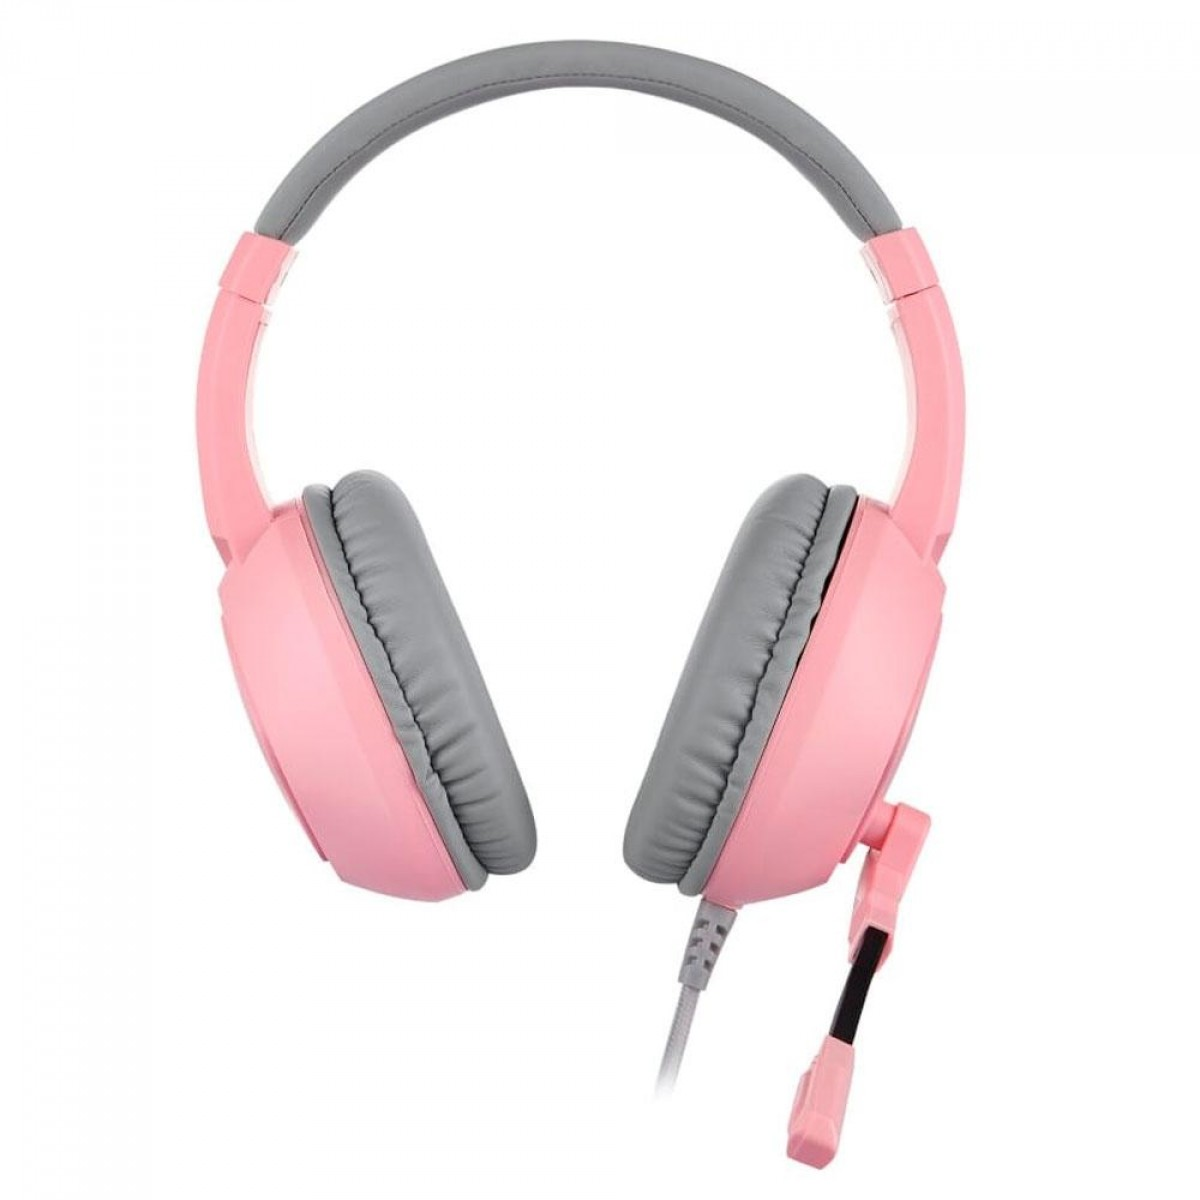 Headset Gamer MotoSpeed G750 RGB Surround, 7.1, Pink, FMSHS0092RSA